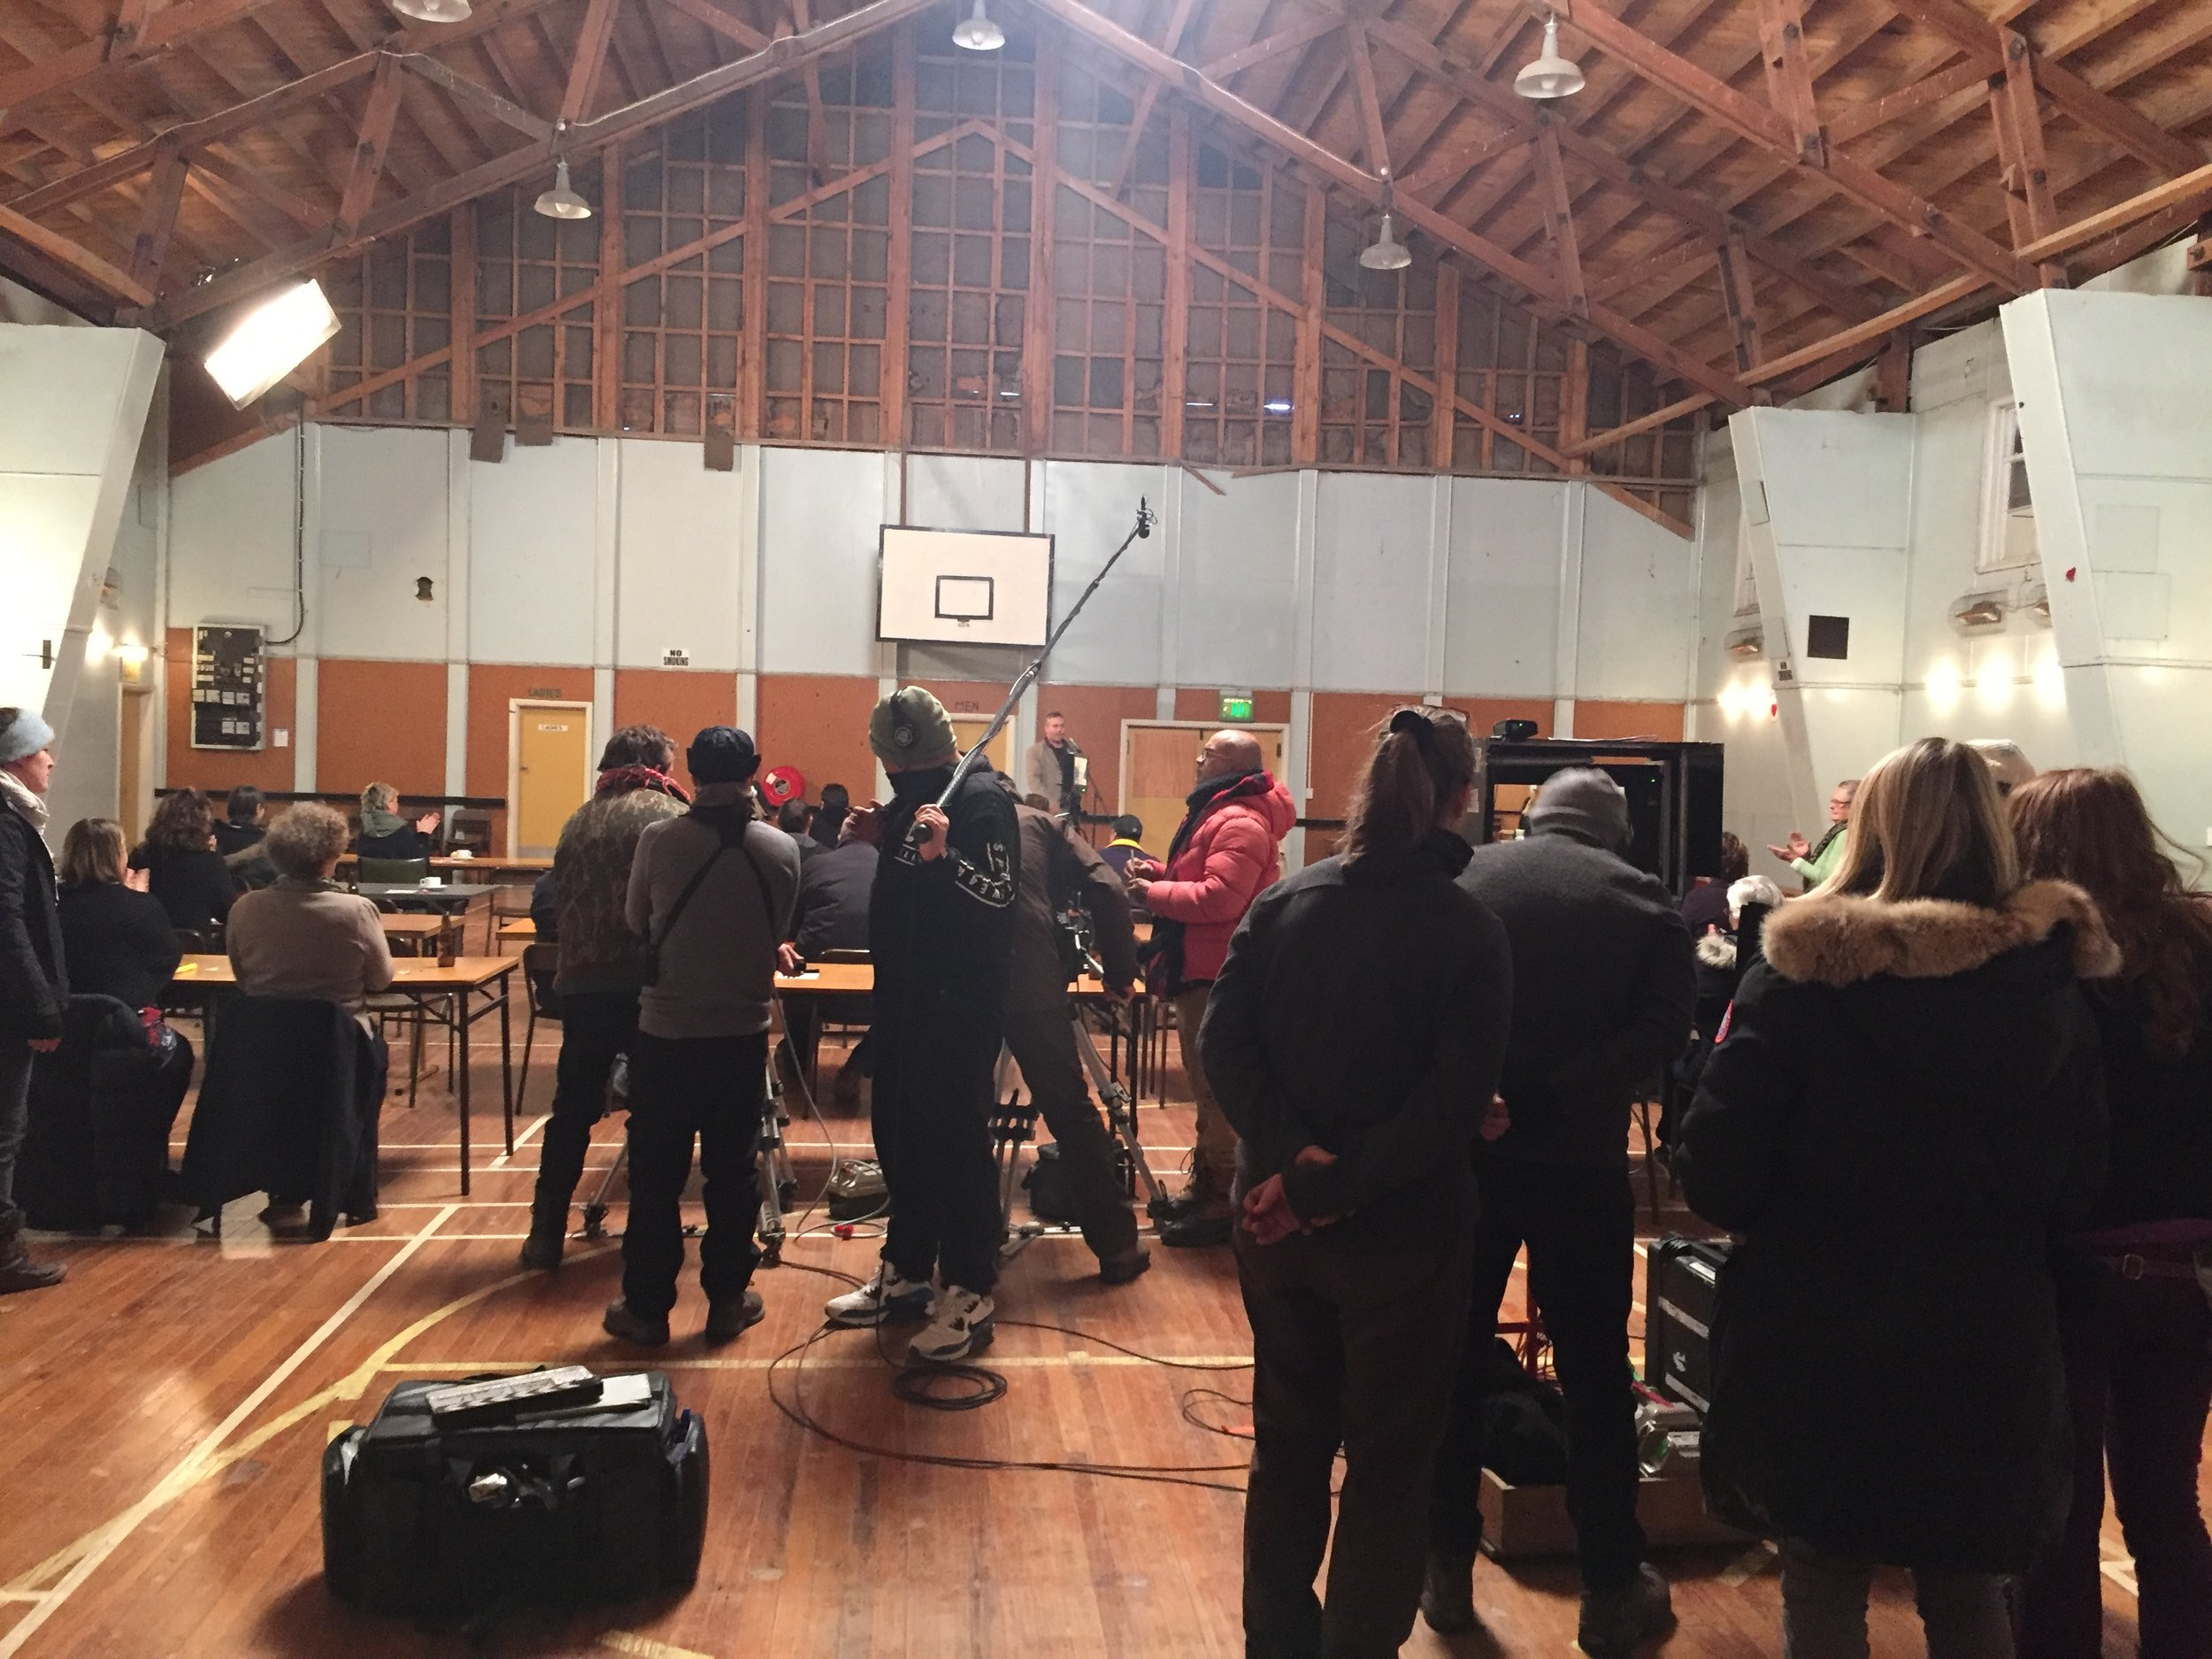 Filming in Otematata Hydro Hall